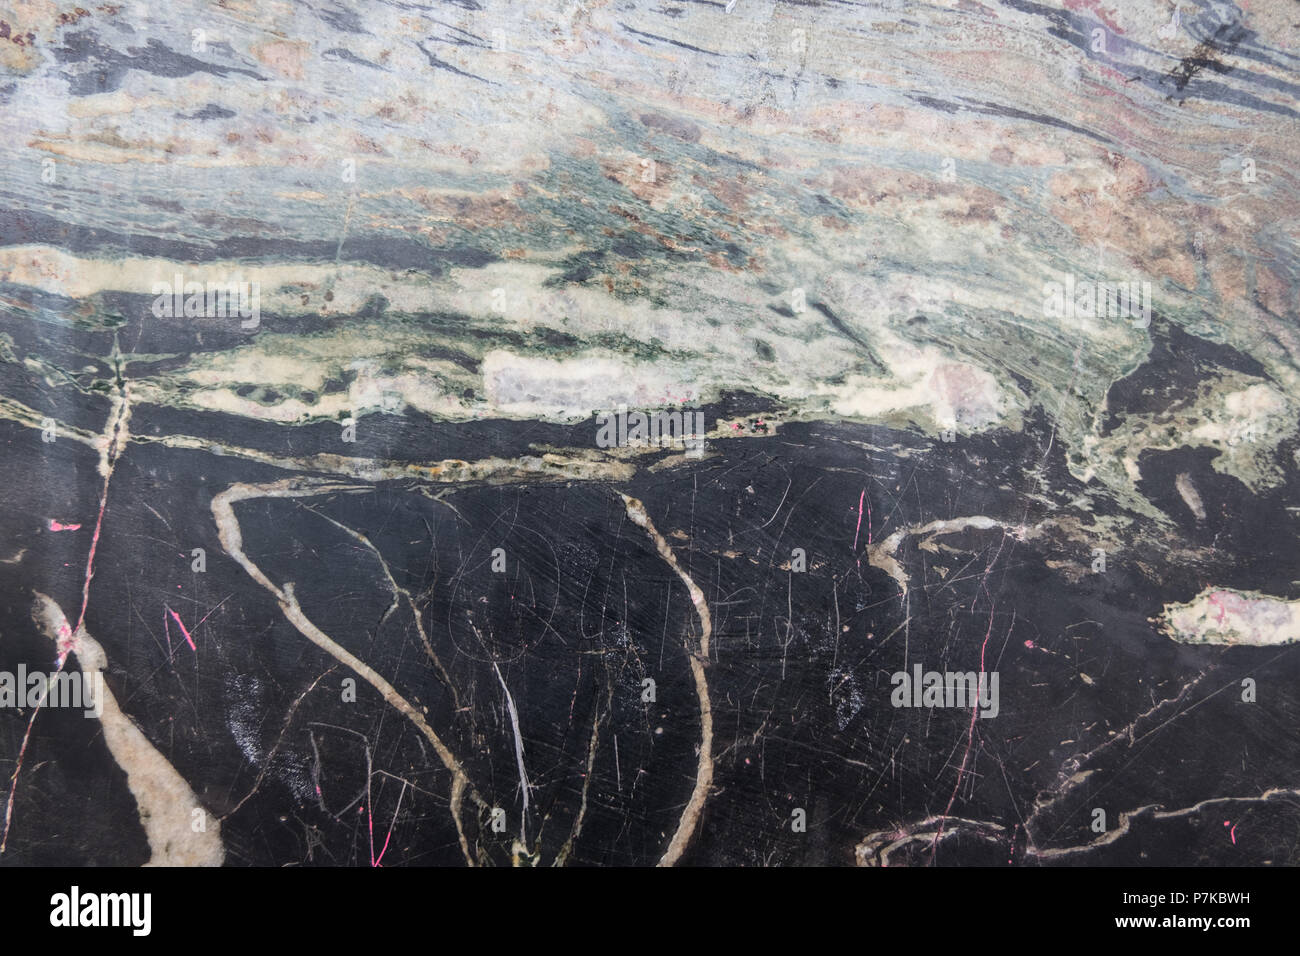 Wallpaper Of Old Black White And Brown Marble Wall Texture